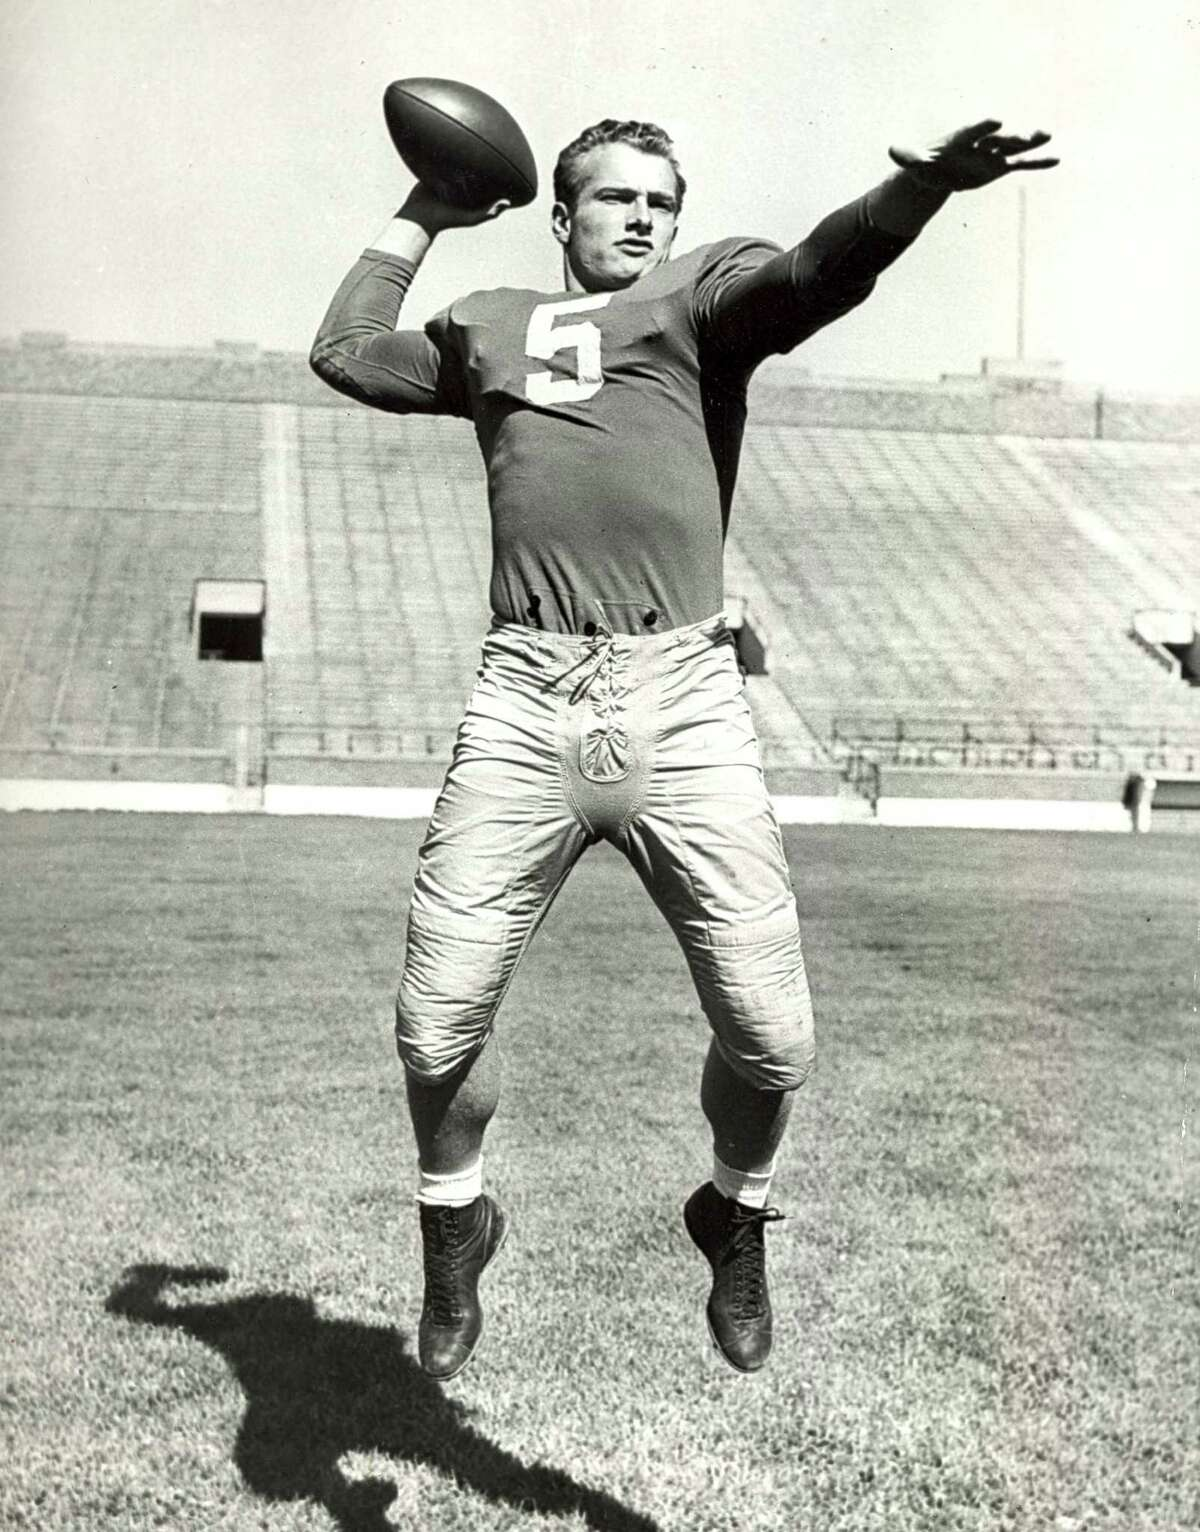 Notre Dame's Paul Hornung, 1956 winner: Hornung, running back for Green Bay, was fined and suspended from the NFL indefinitely in 1963 for betting on games. According to ESPN Classic, he admitted to gambling, but said he never bet against the Packers. His suspension was lifted before the 1964 season.